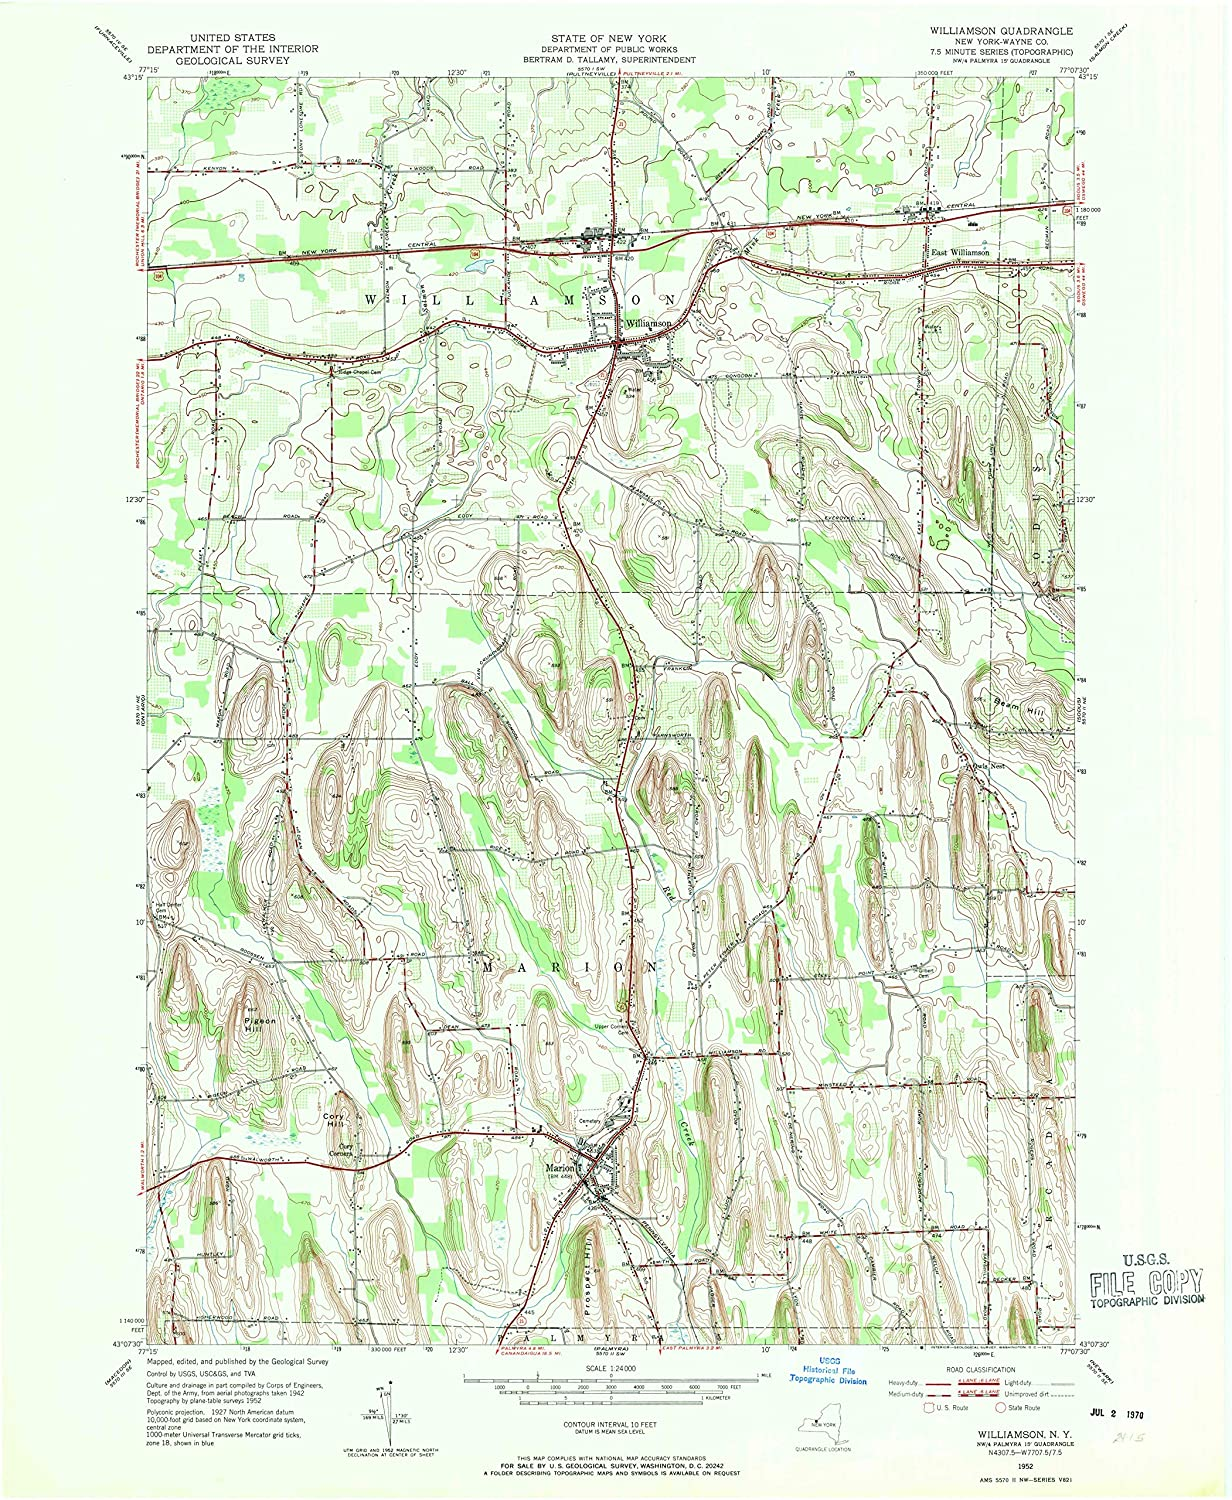 Map Print - Williamson, New York (1952), 1:24000 Scale - 24